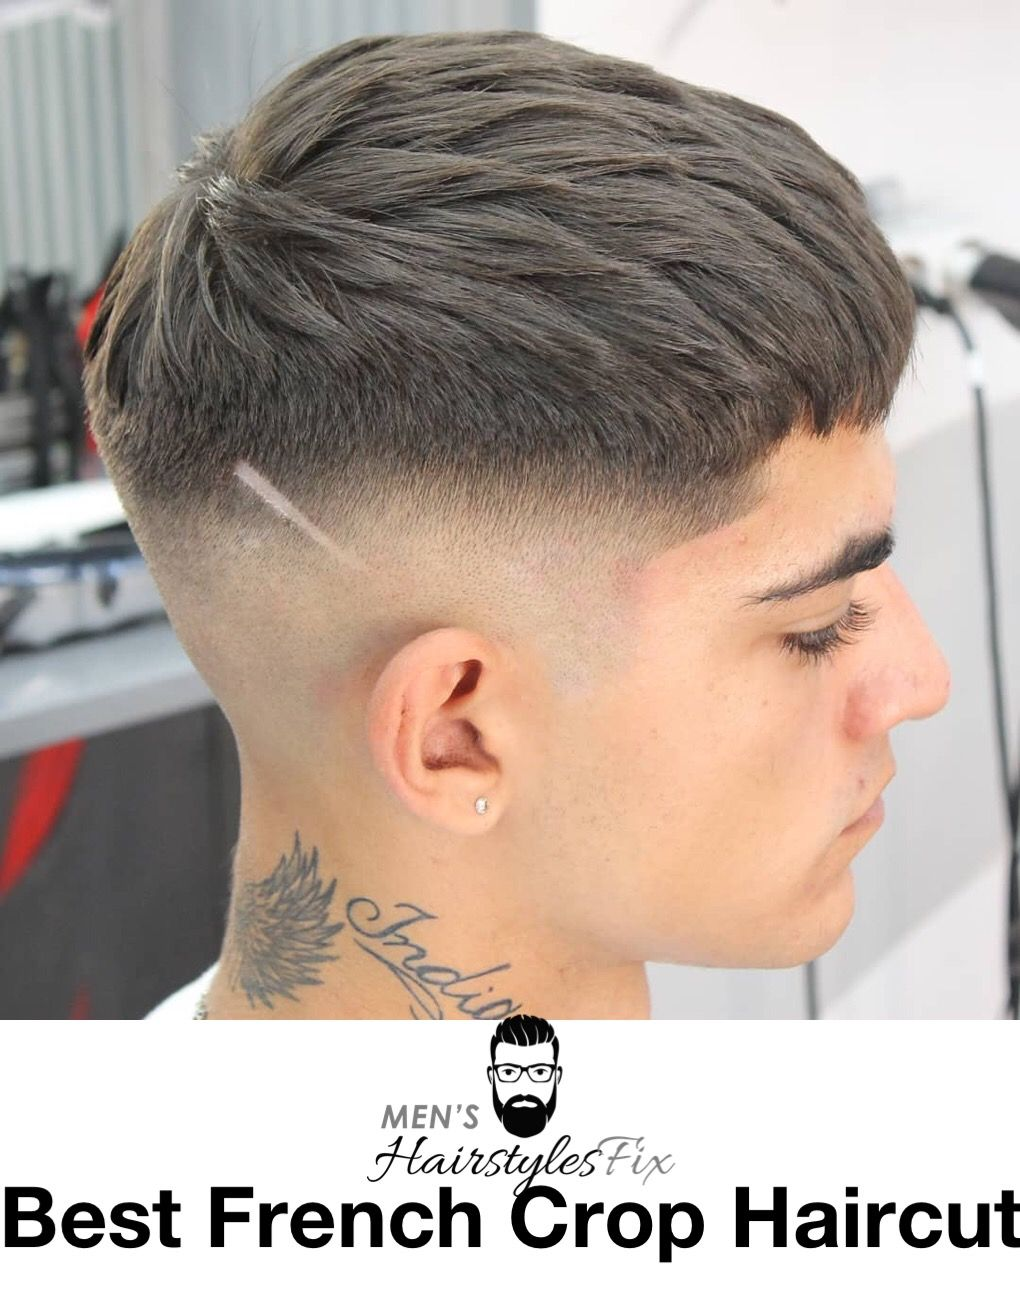 16 Best French Crop Haircut How To Get Styling Guide Men S Hairstyles Faded Hair Crop Haircut Crop Hair